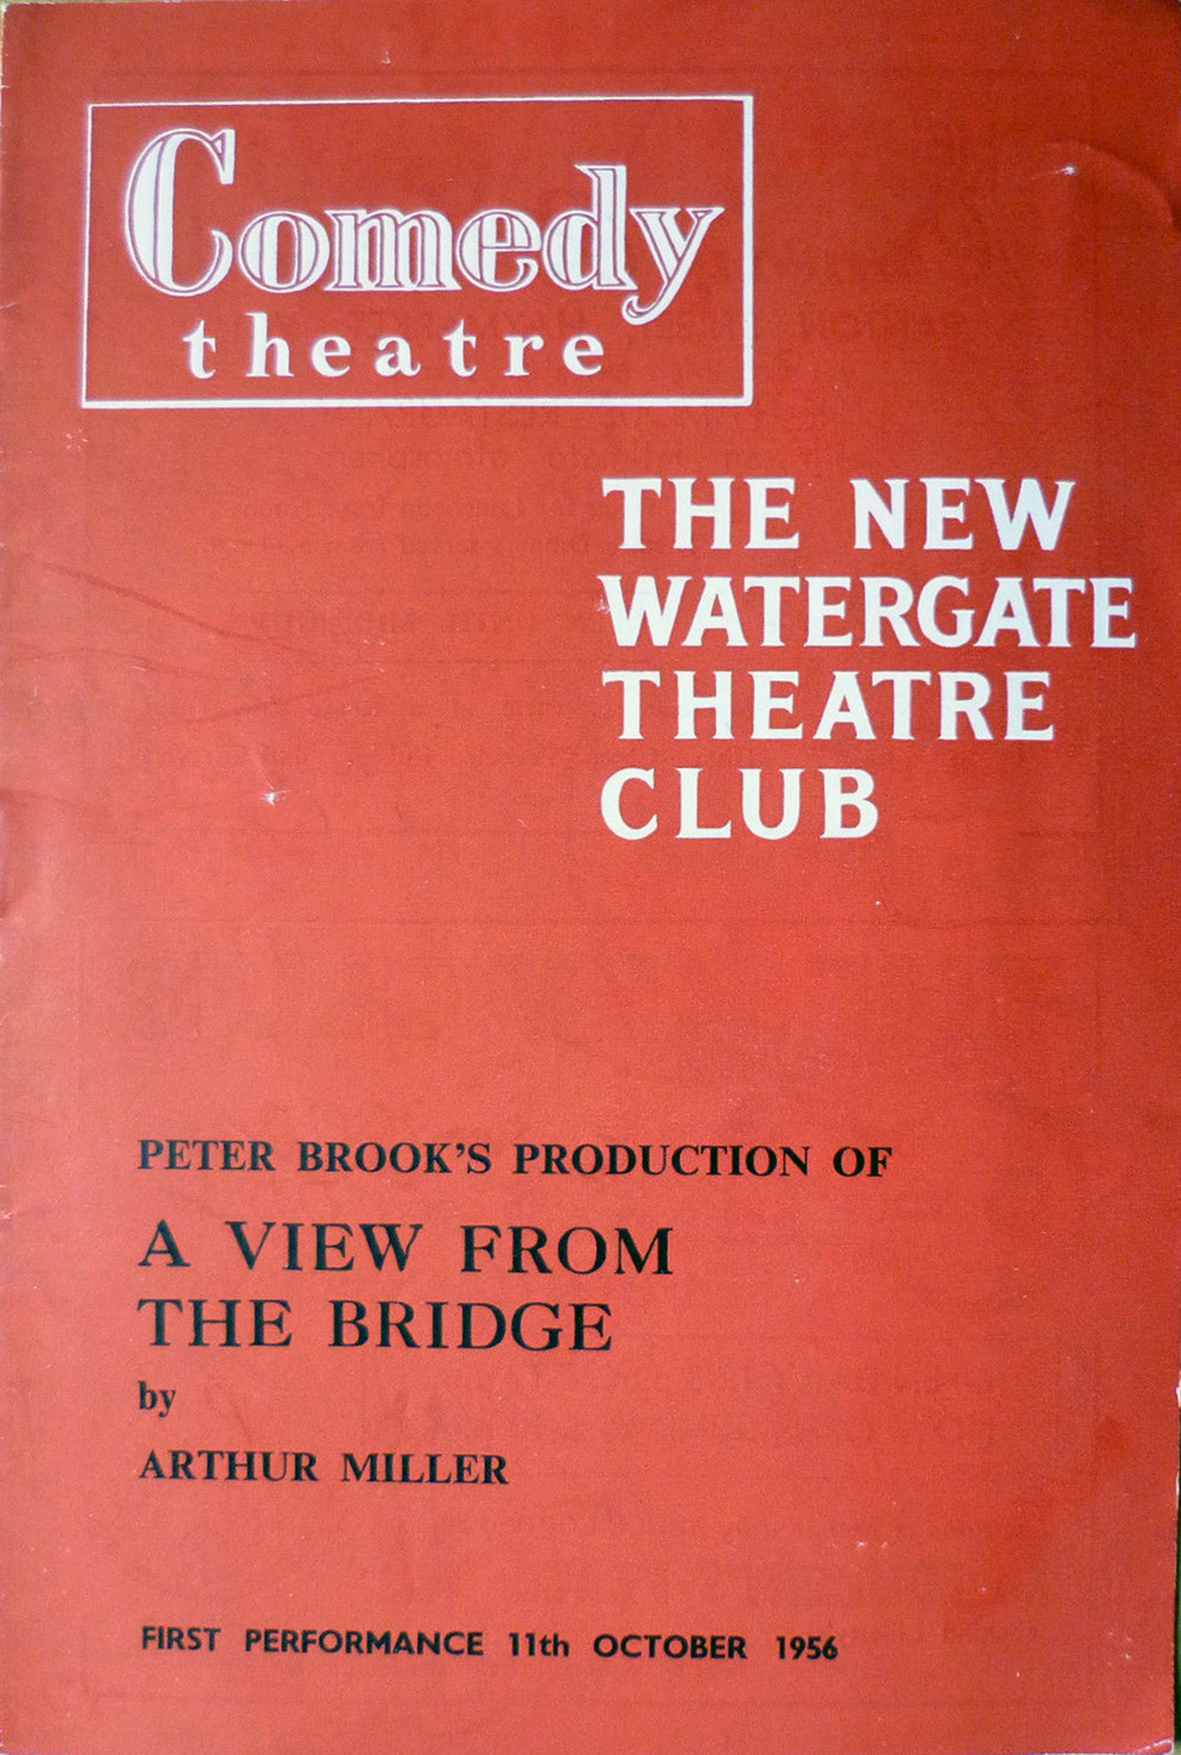 Programme for A View From A Bridge at the Comedy Theatre. The New Watergate Theatre Club was a ruse to get past the censors who had banned the play in the UK.